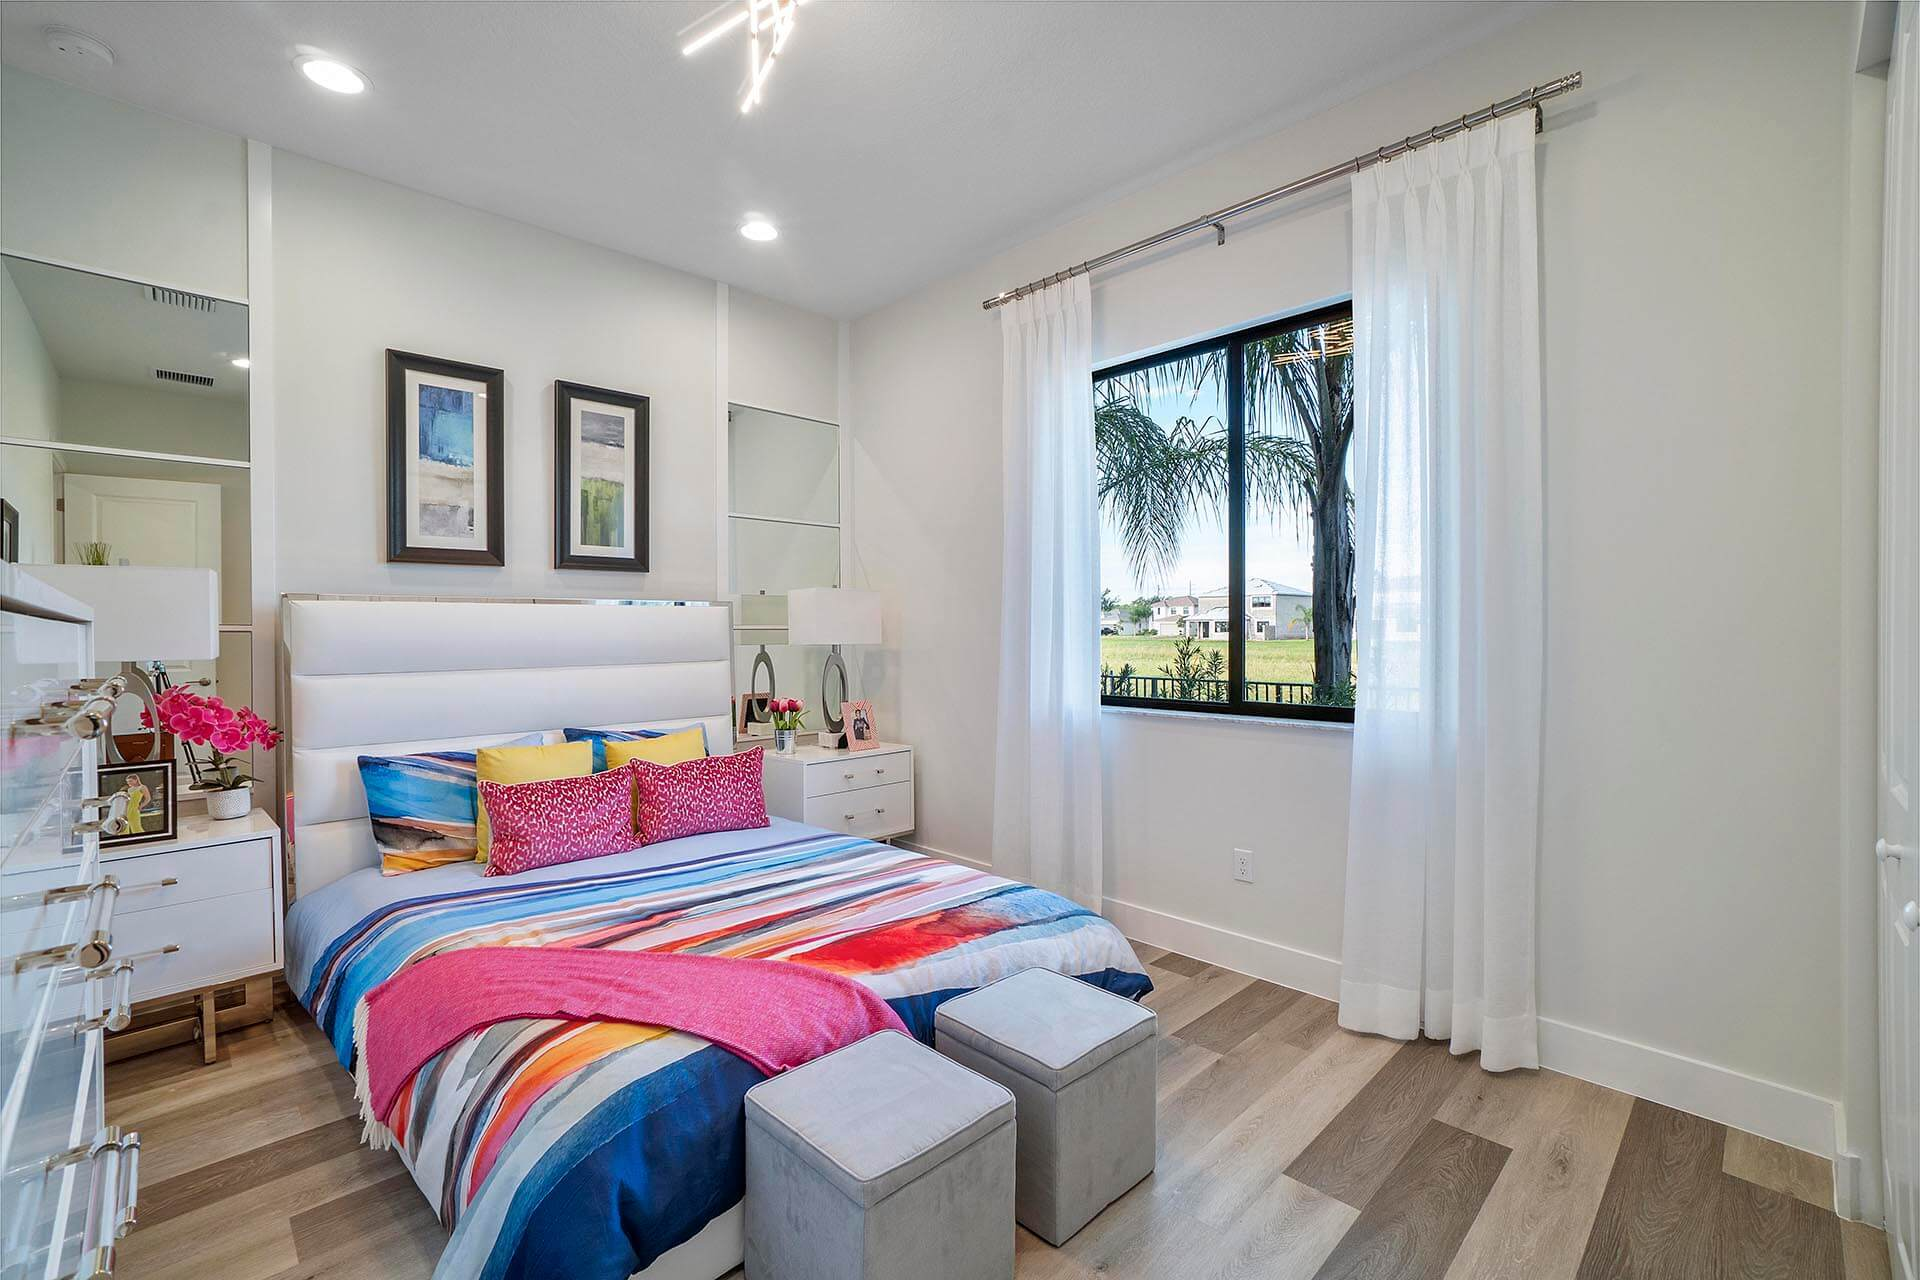 Bedroom featured in the Rio Grand By Akel Homes in Palm Beach County, FL